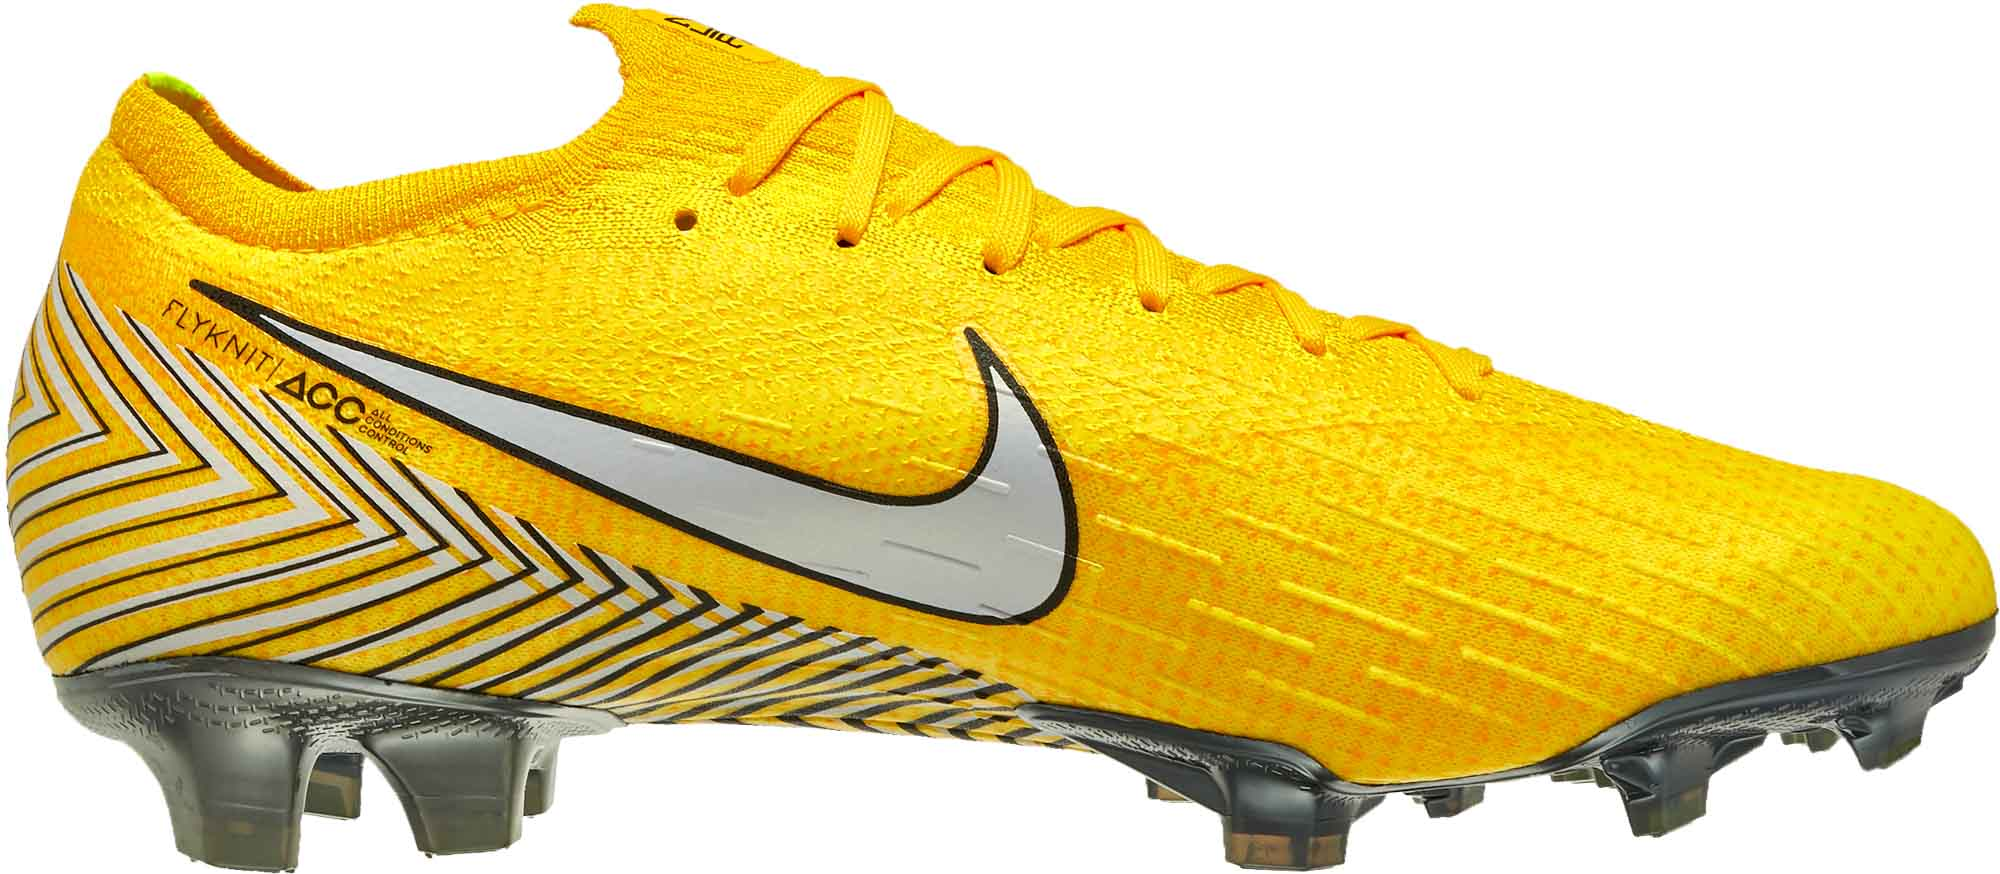 c027095d1 Nike Neymar Vapor 12 Elite FG - Amarillo White Dynamic Yellow Black ...